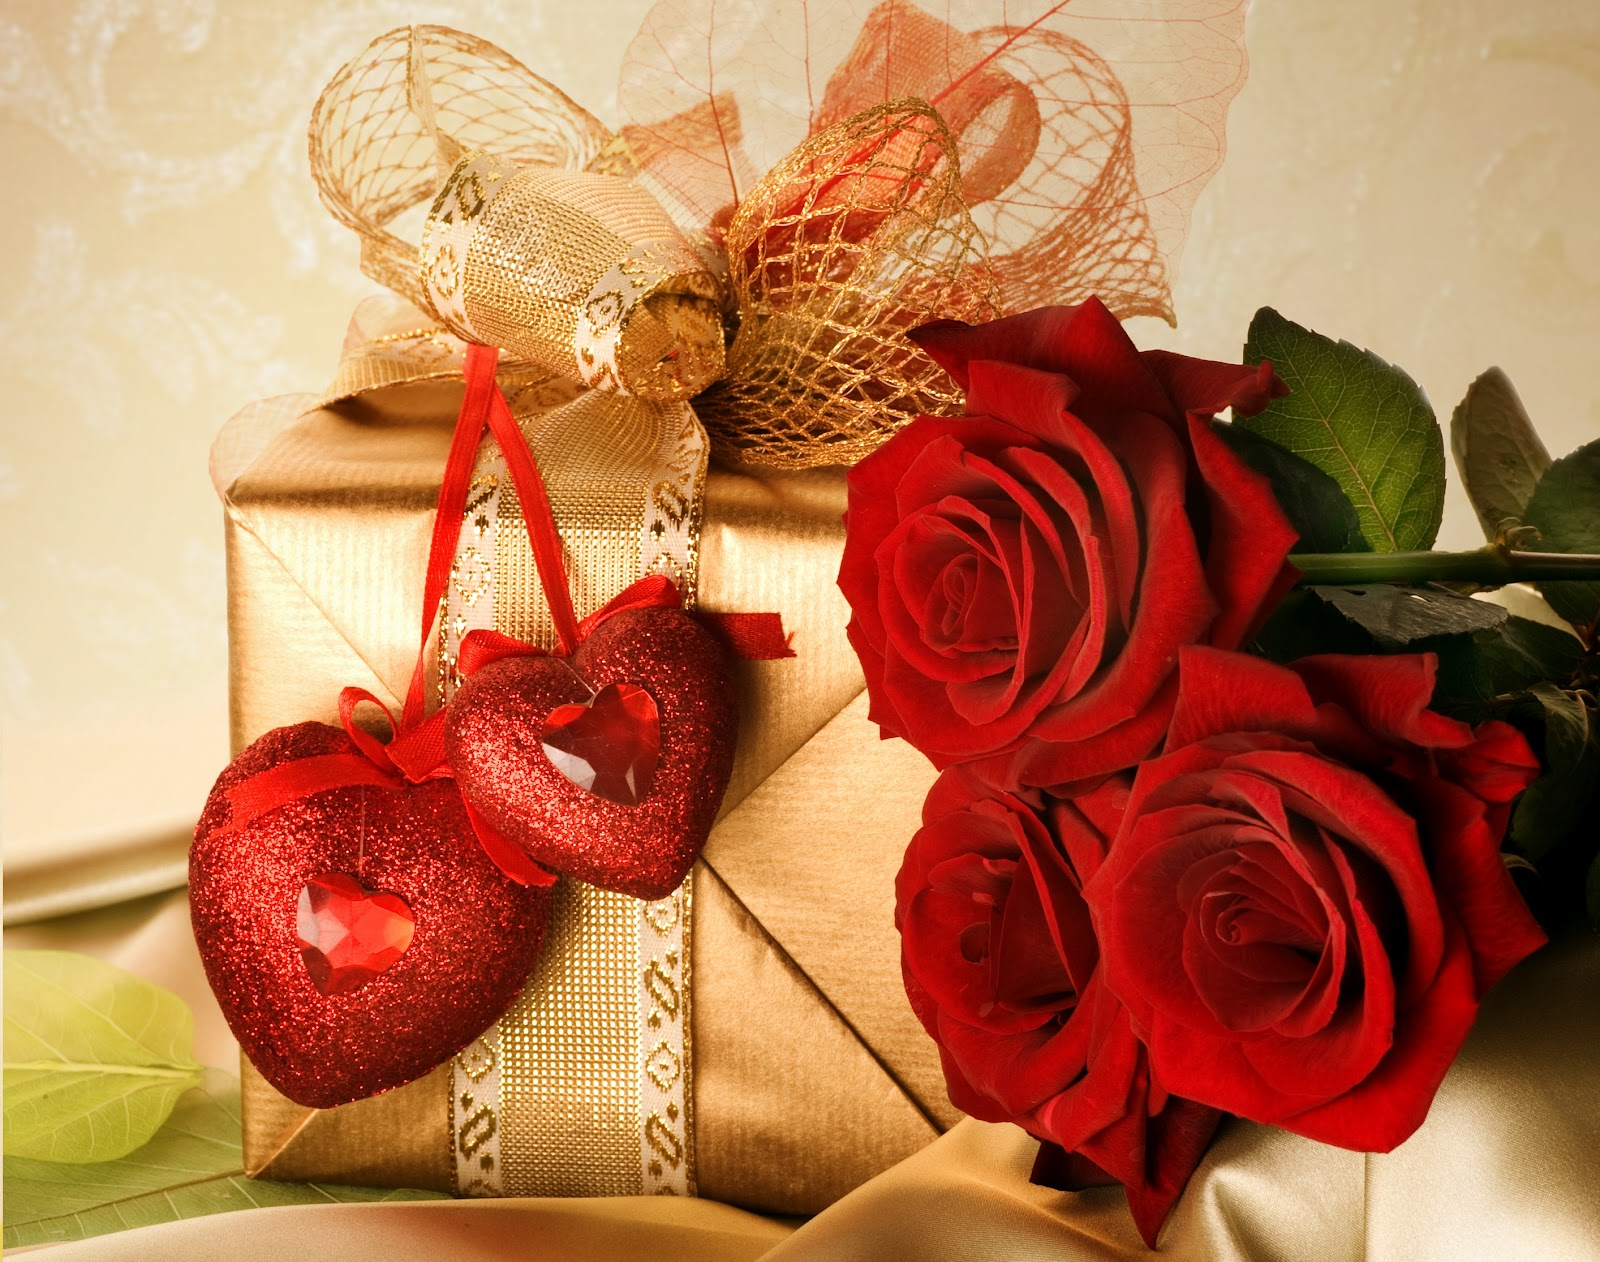 Beautiful flower wallpapers for you gift and love flower wallpaper love heart roses gift flower wallpaper izmirmasajfo